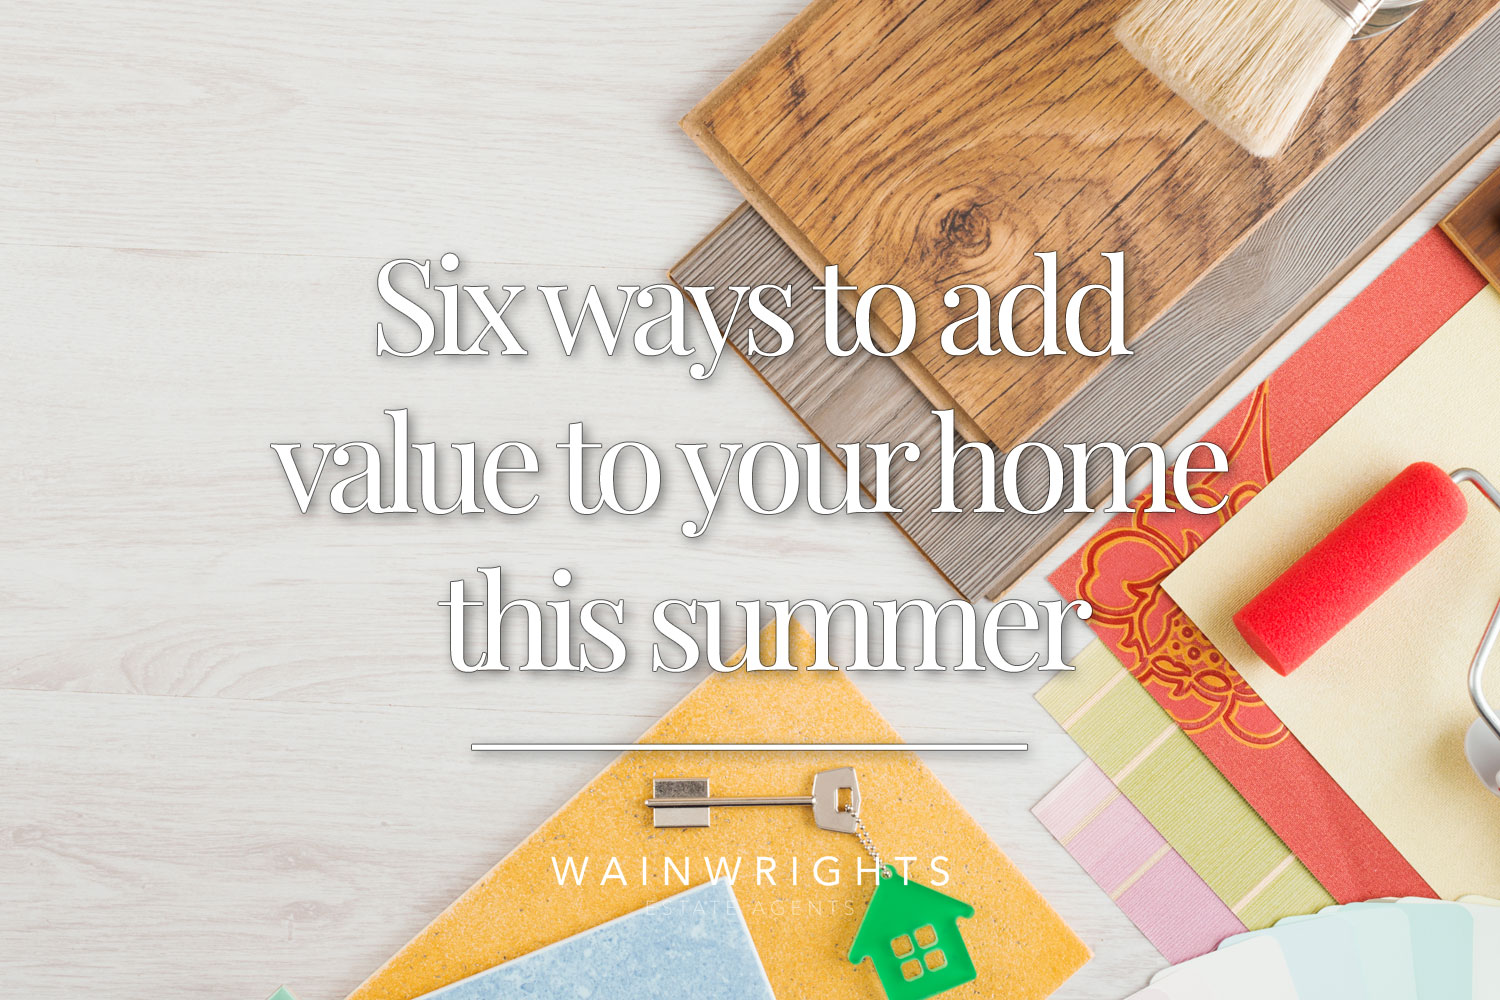 Staycation-savvy--Six-ways-to-add-value-to-your-home-this-summer